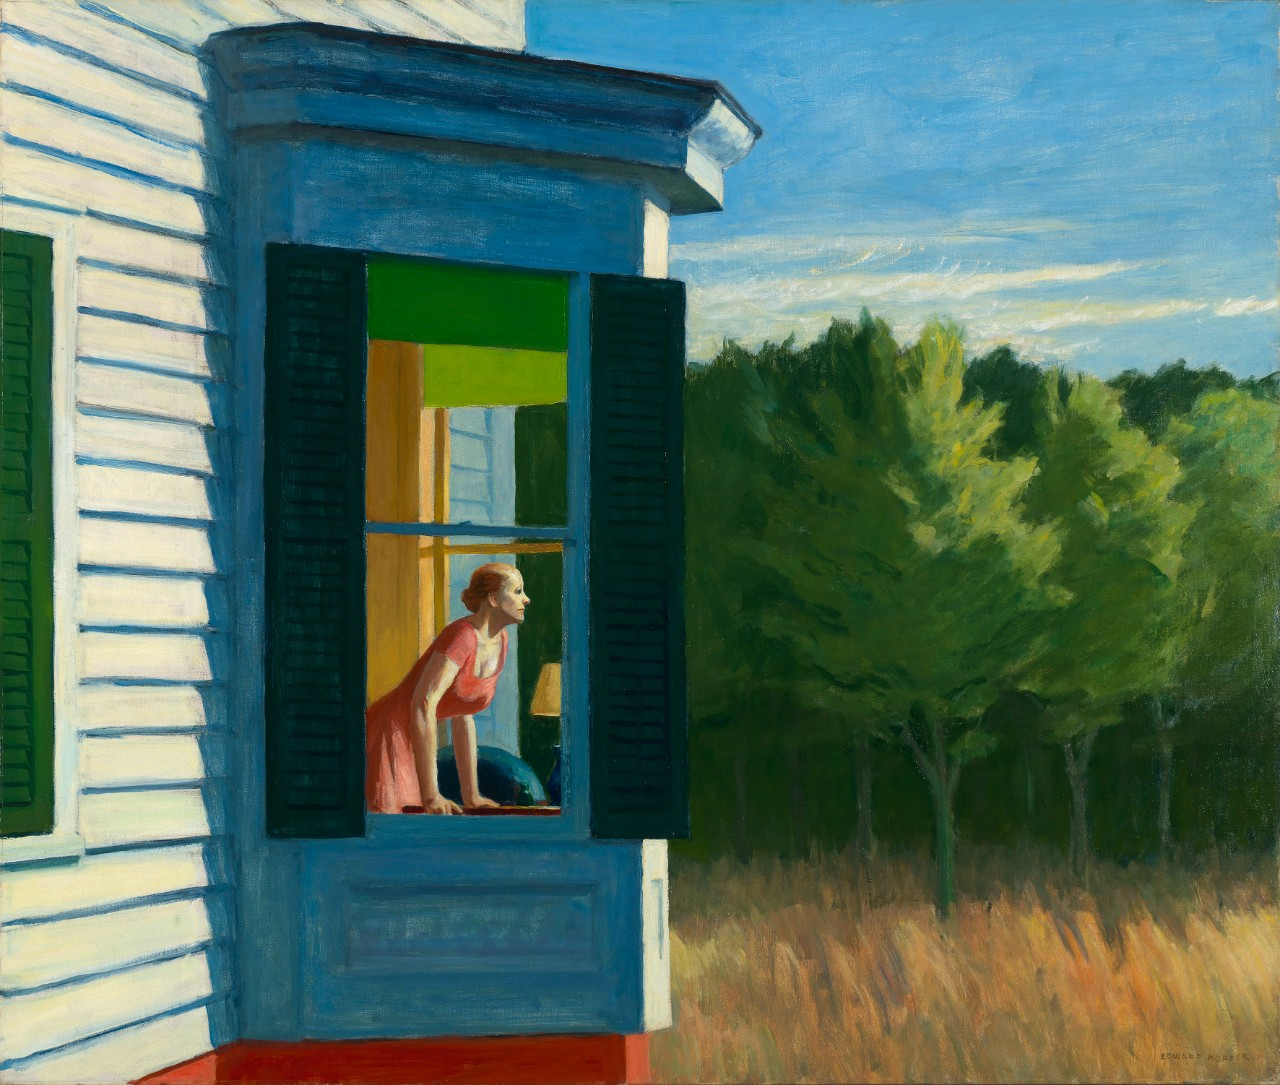 Edward Hopper Cape Cod Morning, 1950 Huile sur toile, 86.7 x 102.3 cm Smithsonian American Art Museum, Gift of the Sara Roby Foundation © Heirs of Josephine Hopper / 2019, ProLitteris, Zurich Photo : Smithsonian American Art Museum, Gene Young